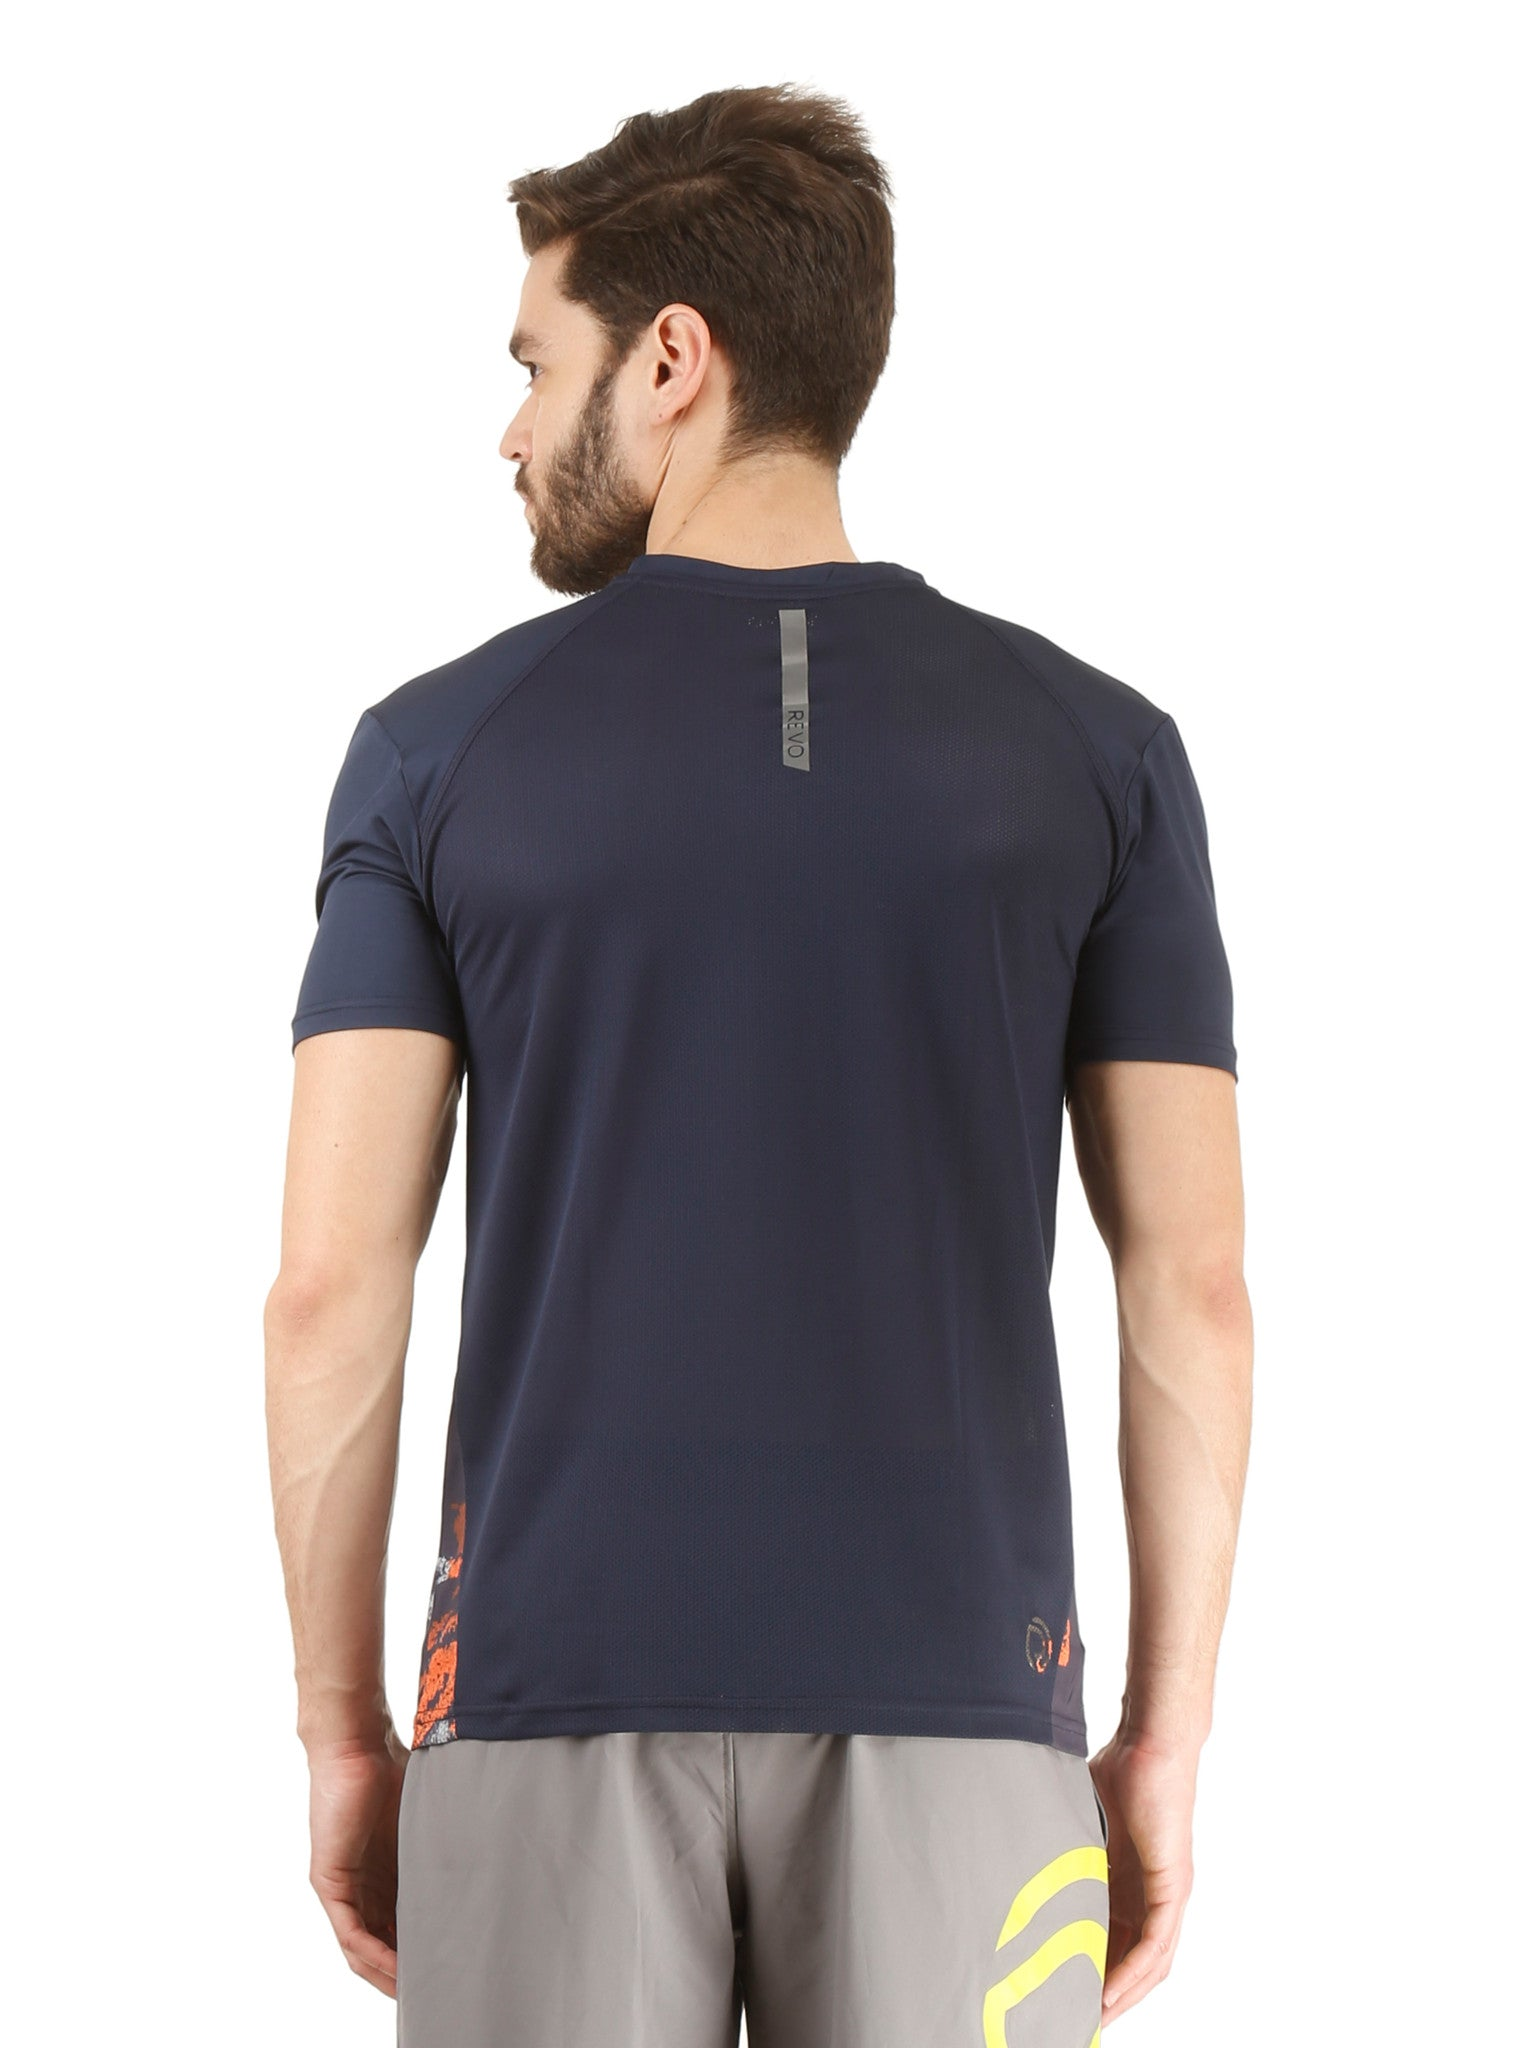 Core Technical Training Tee